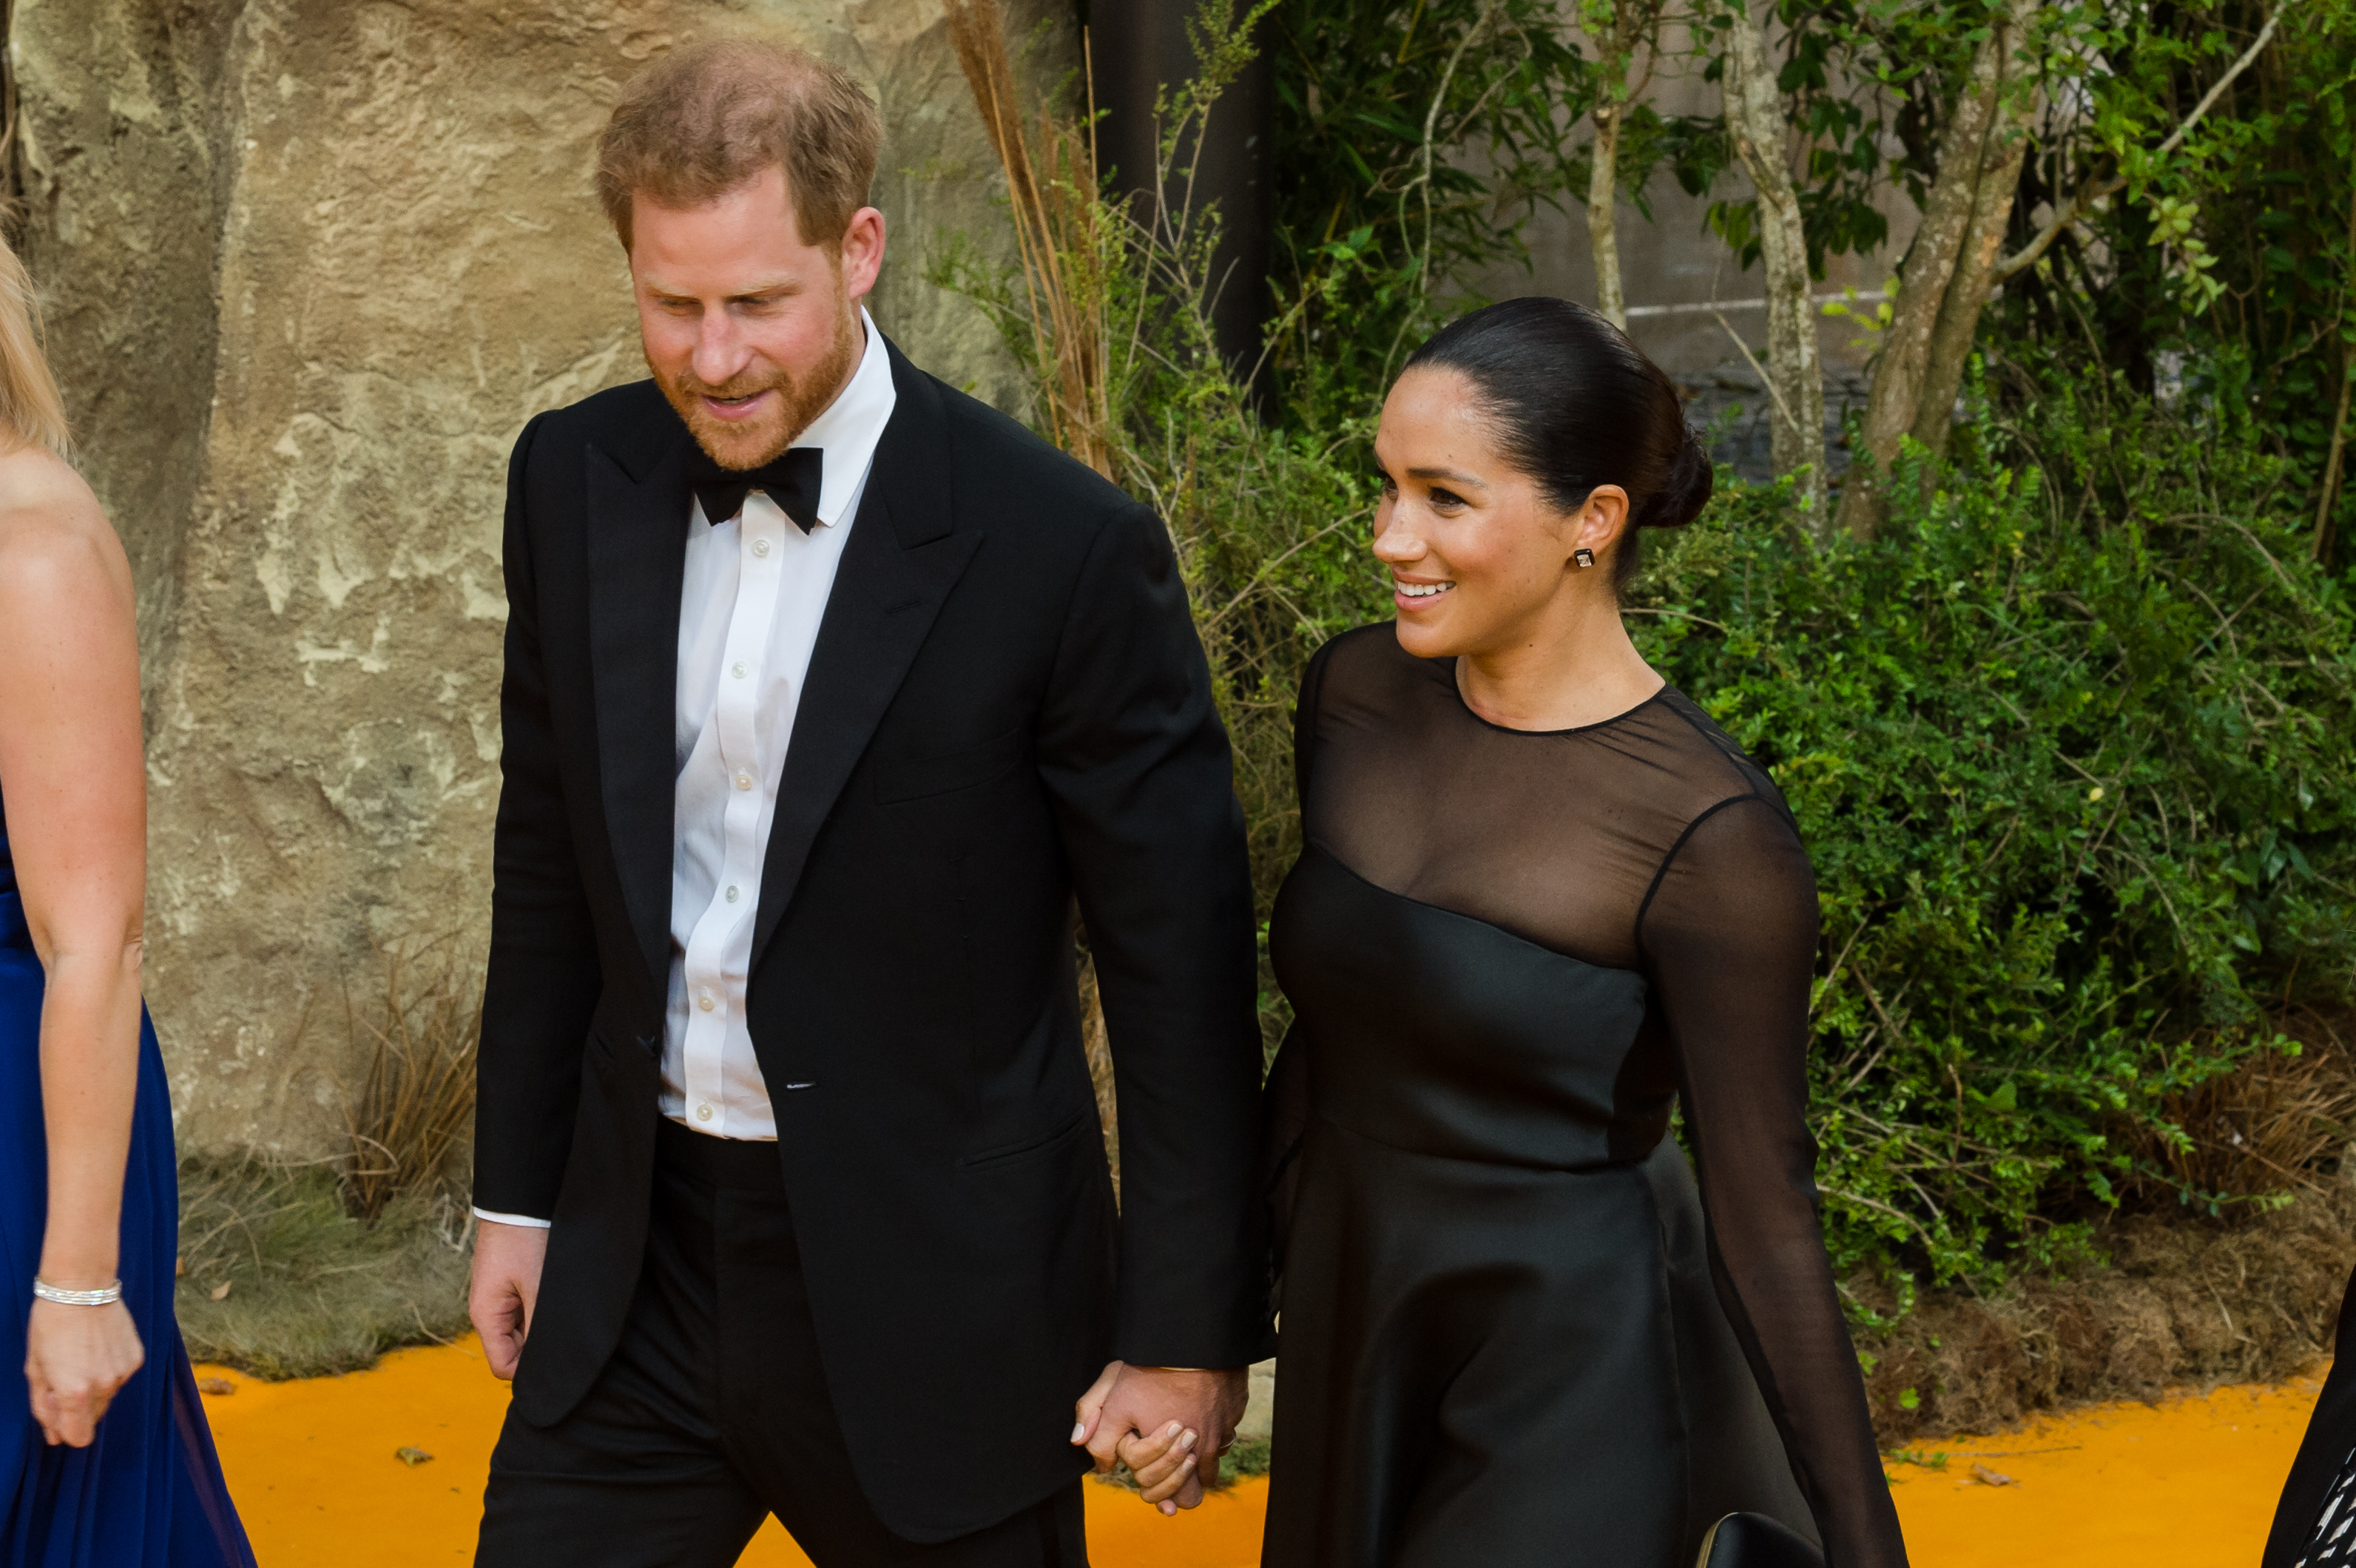 Here's why the internet is angry at Prince Harry and Meghan Markle